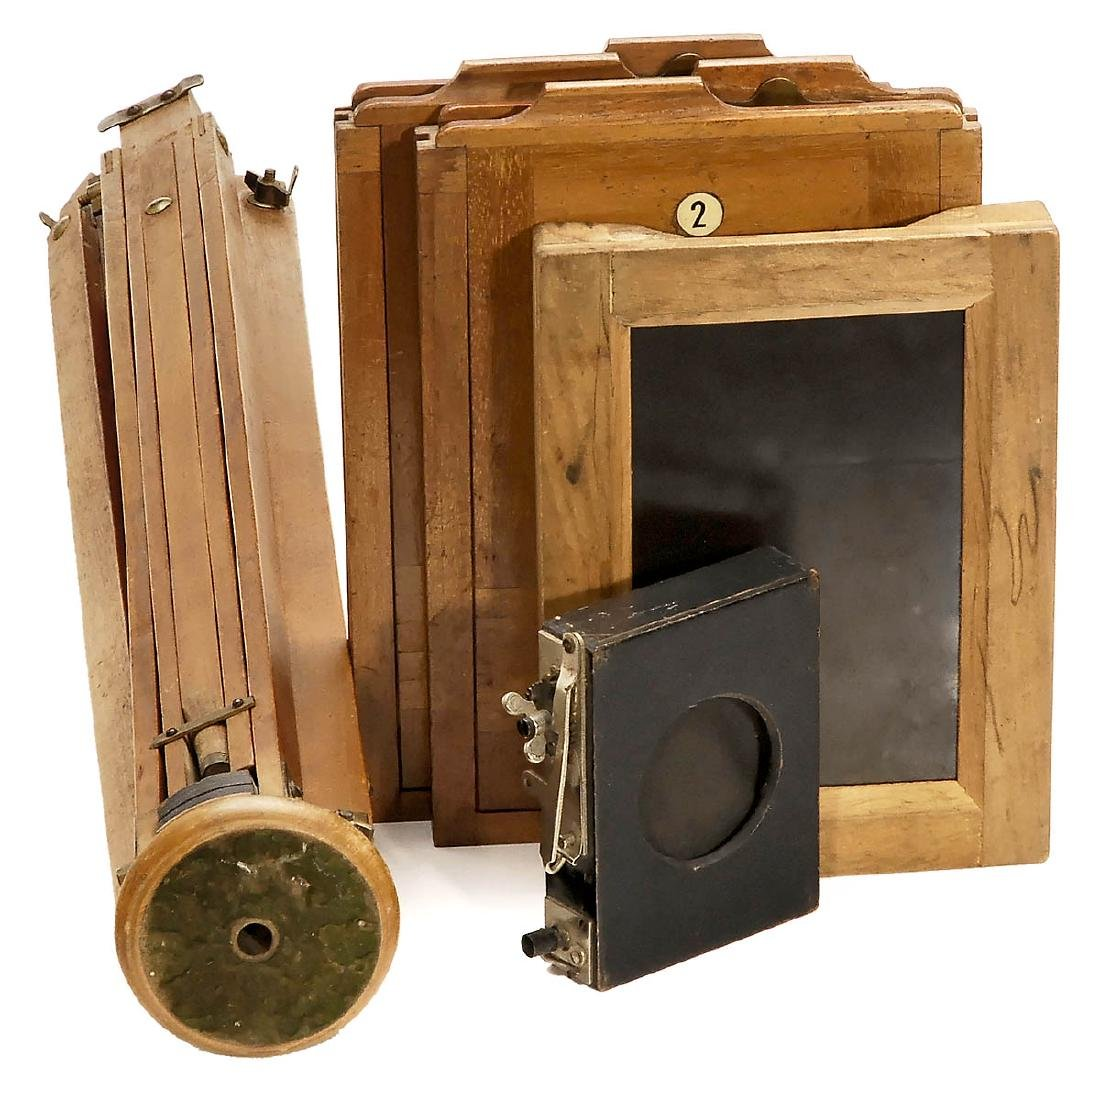 2 Field Cameras (13 x 18 cm and 24 x 30 cm) - 2